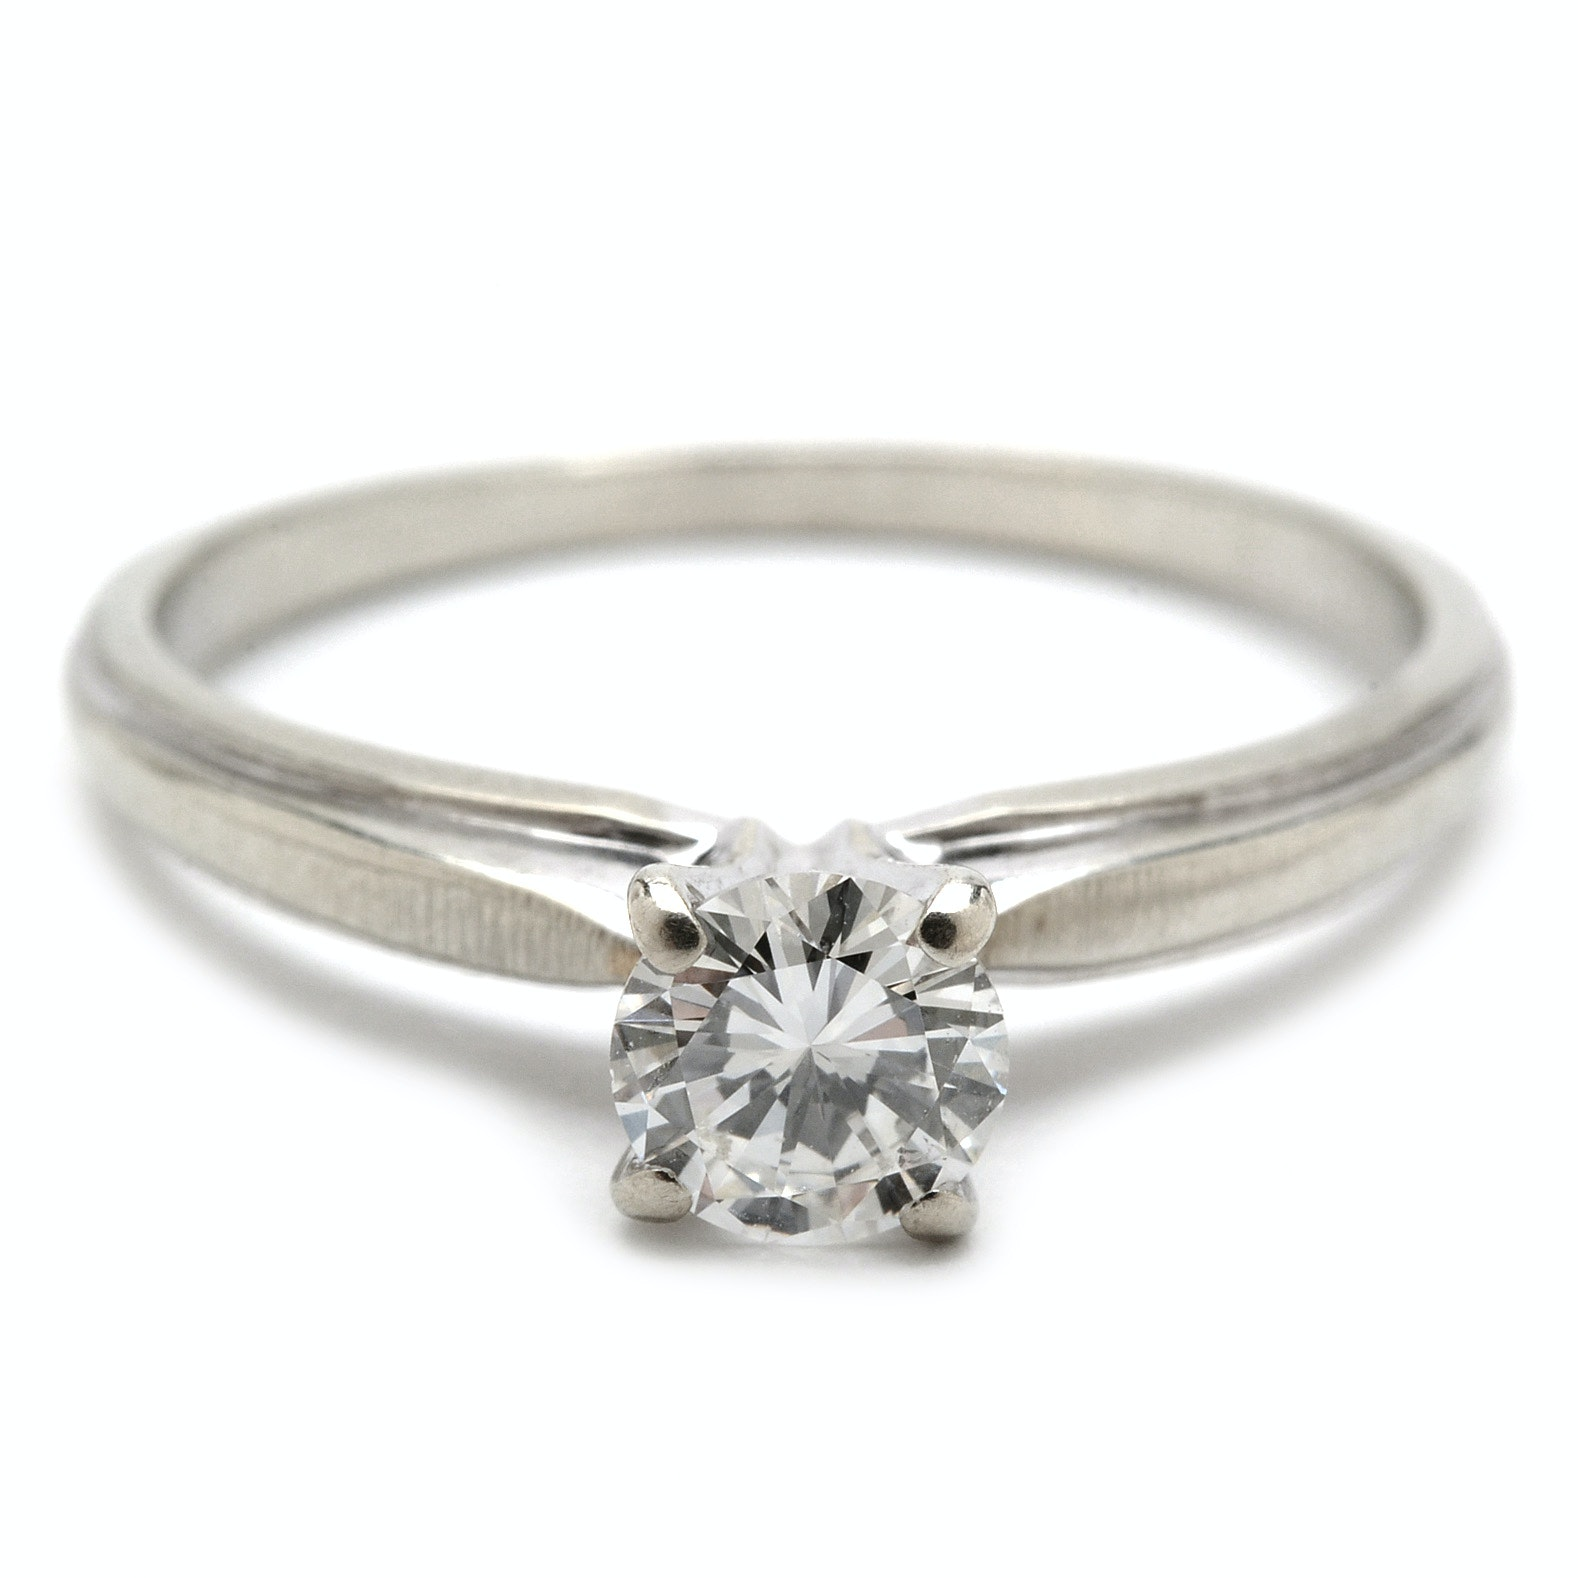 18K White Gold Solitaire Diamond Engagement Ring